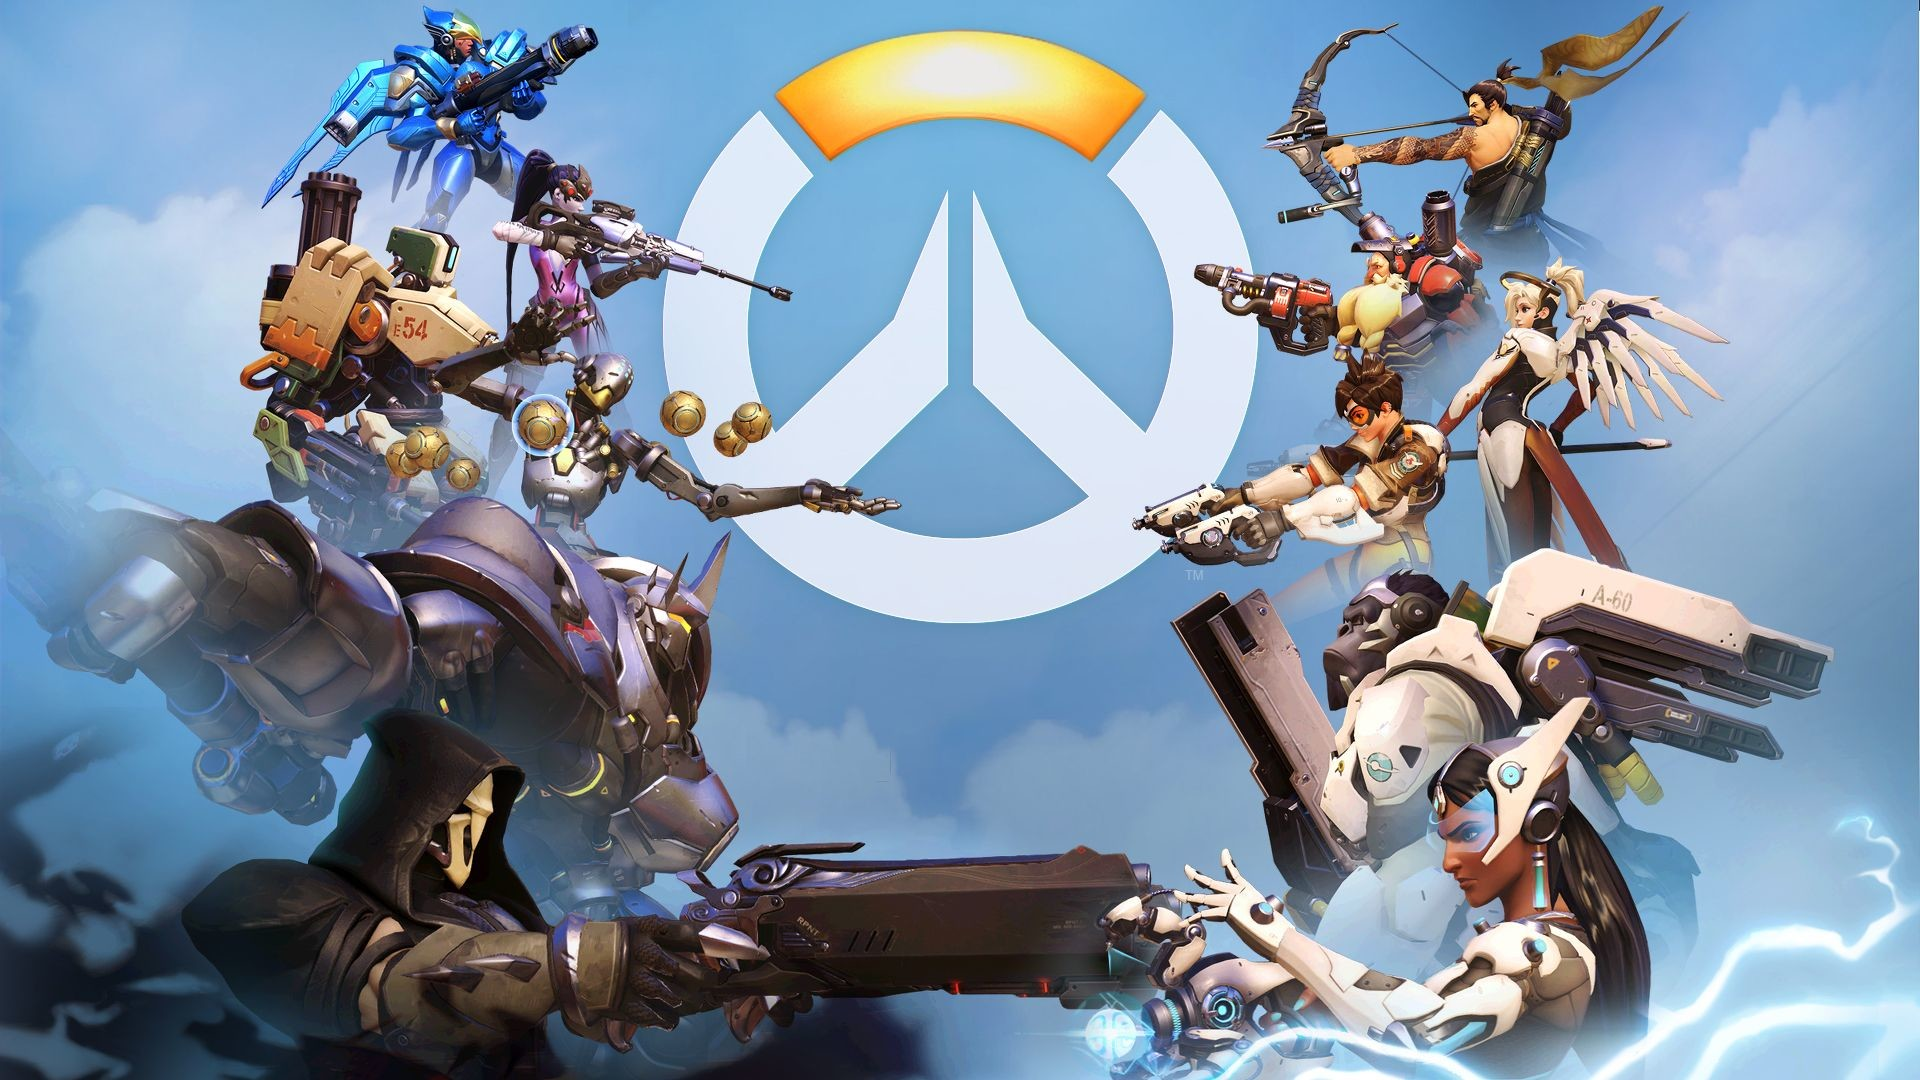 1920x1080 overwatch game wallpaper - 1080 x 1920 HD Backgrounds, High Definition  wallpapers for Desktop,